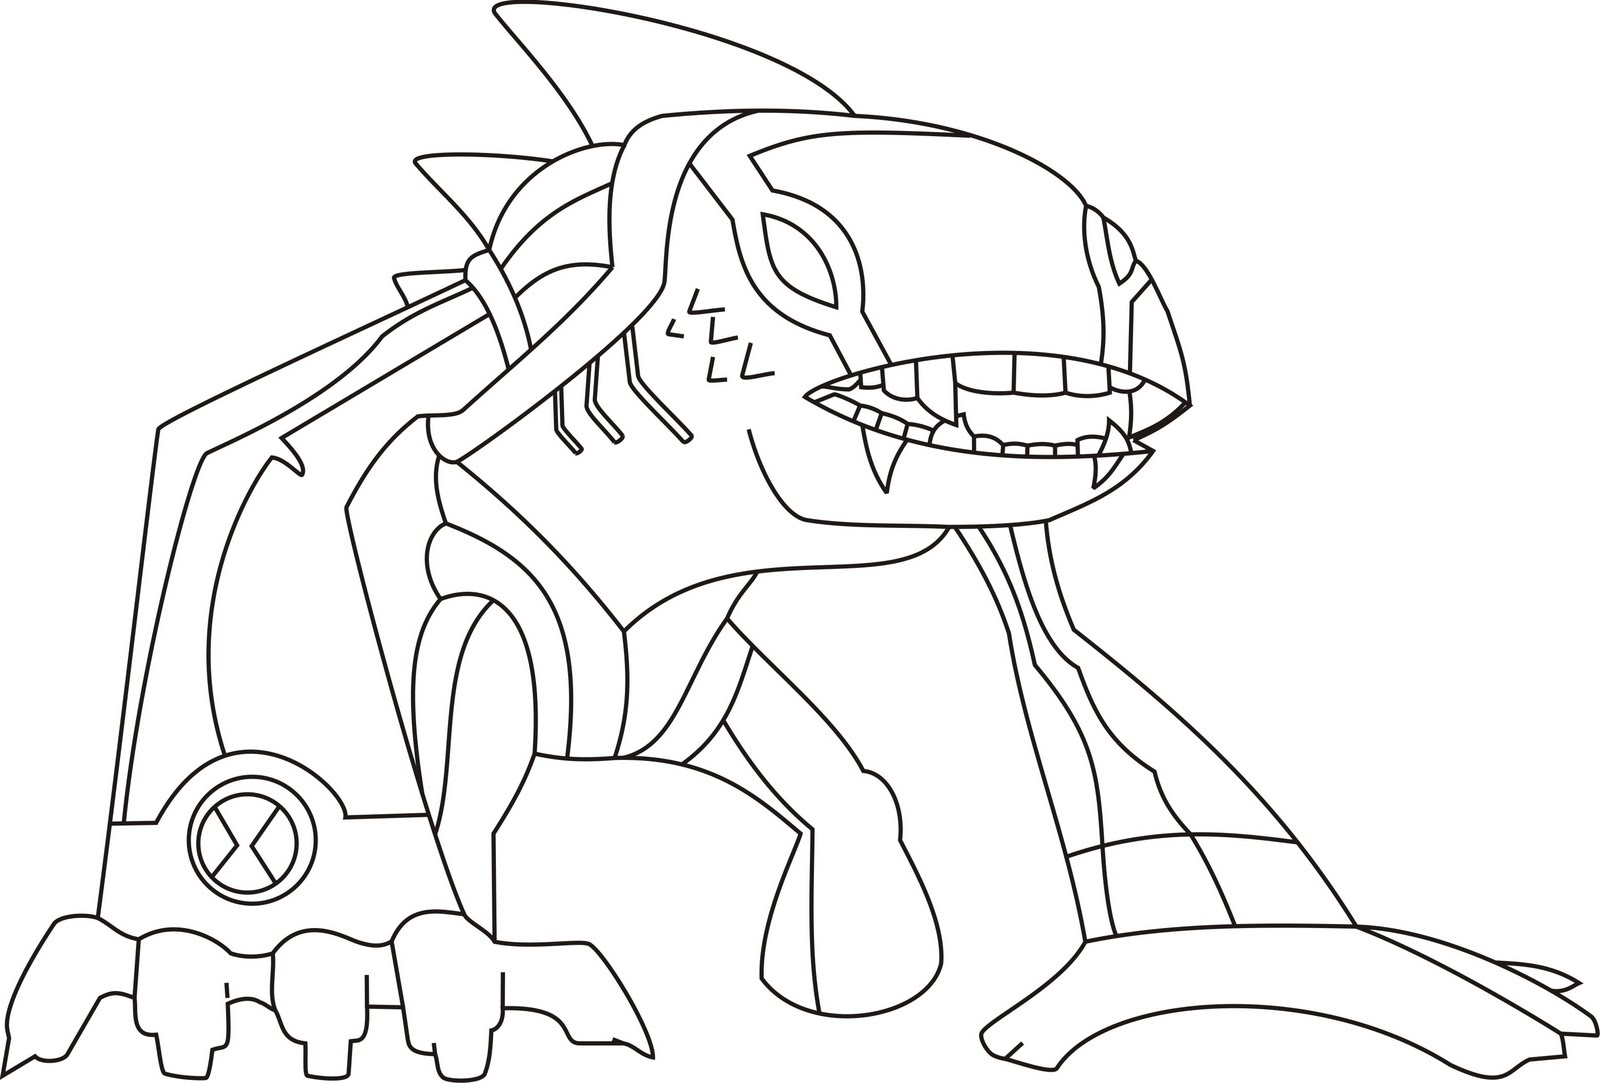 It's just a photo of Adaptable ben 10 coloring sheets